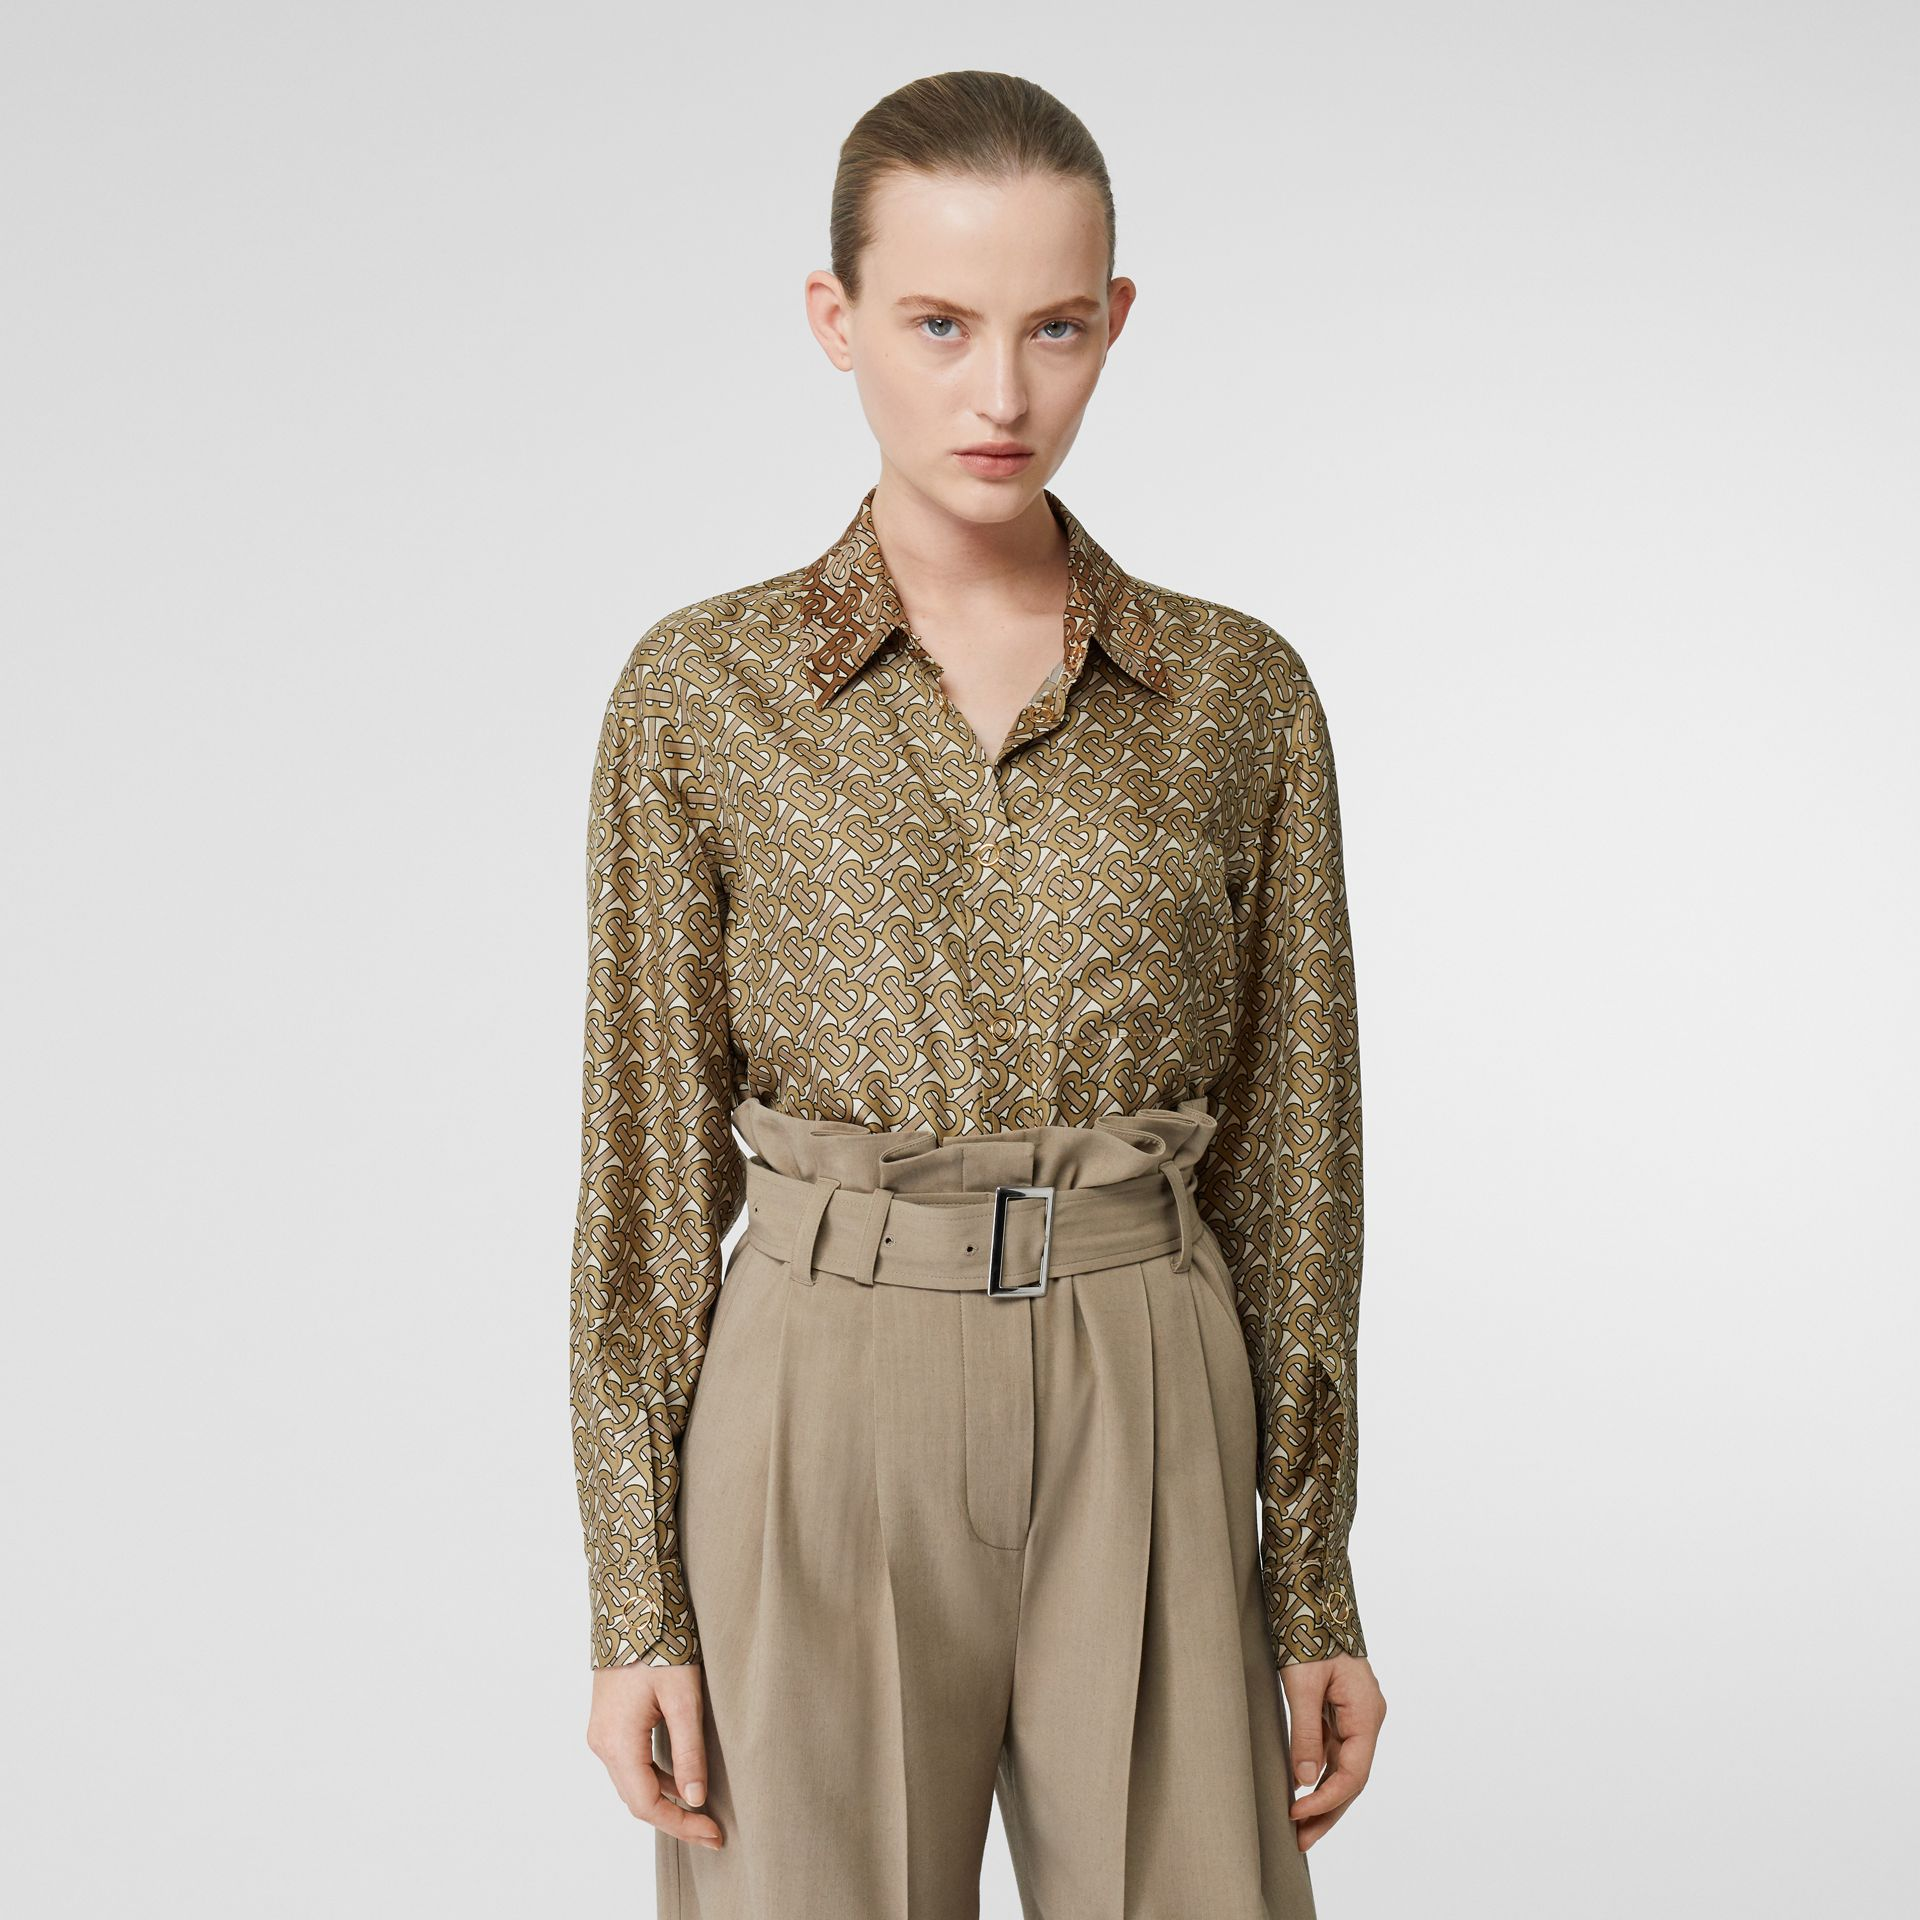 Contrast Collar Monogram Print Silk Shirt in Military Olive - Women | Burberry Hong Kong S.A.R - gallery image 0